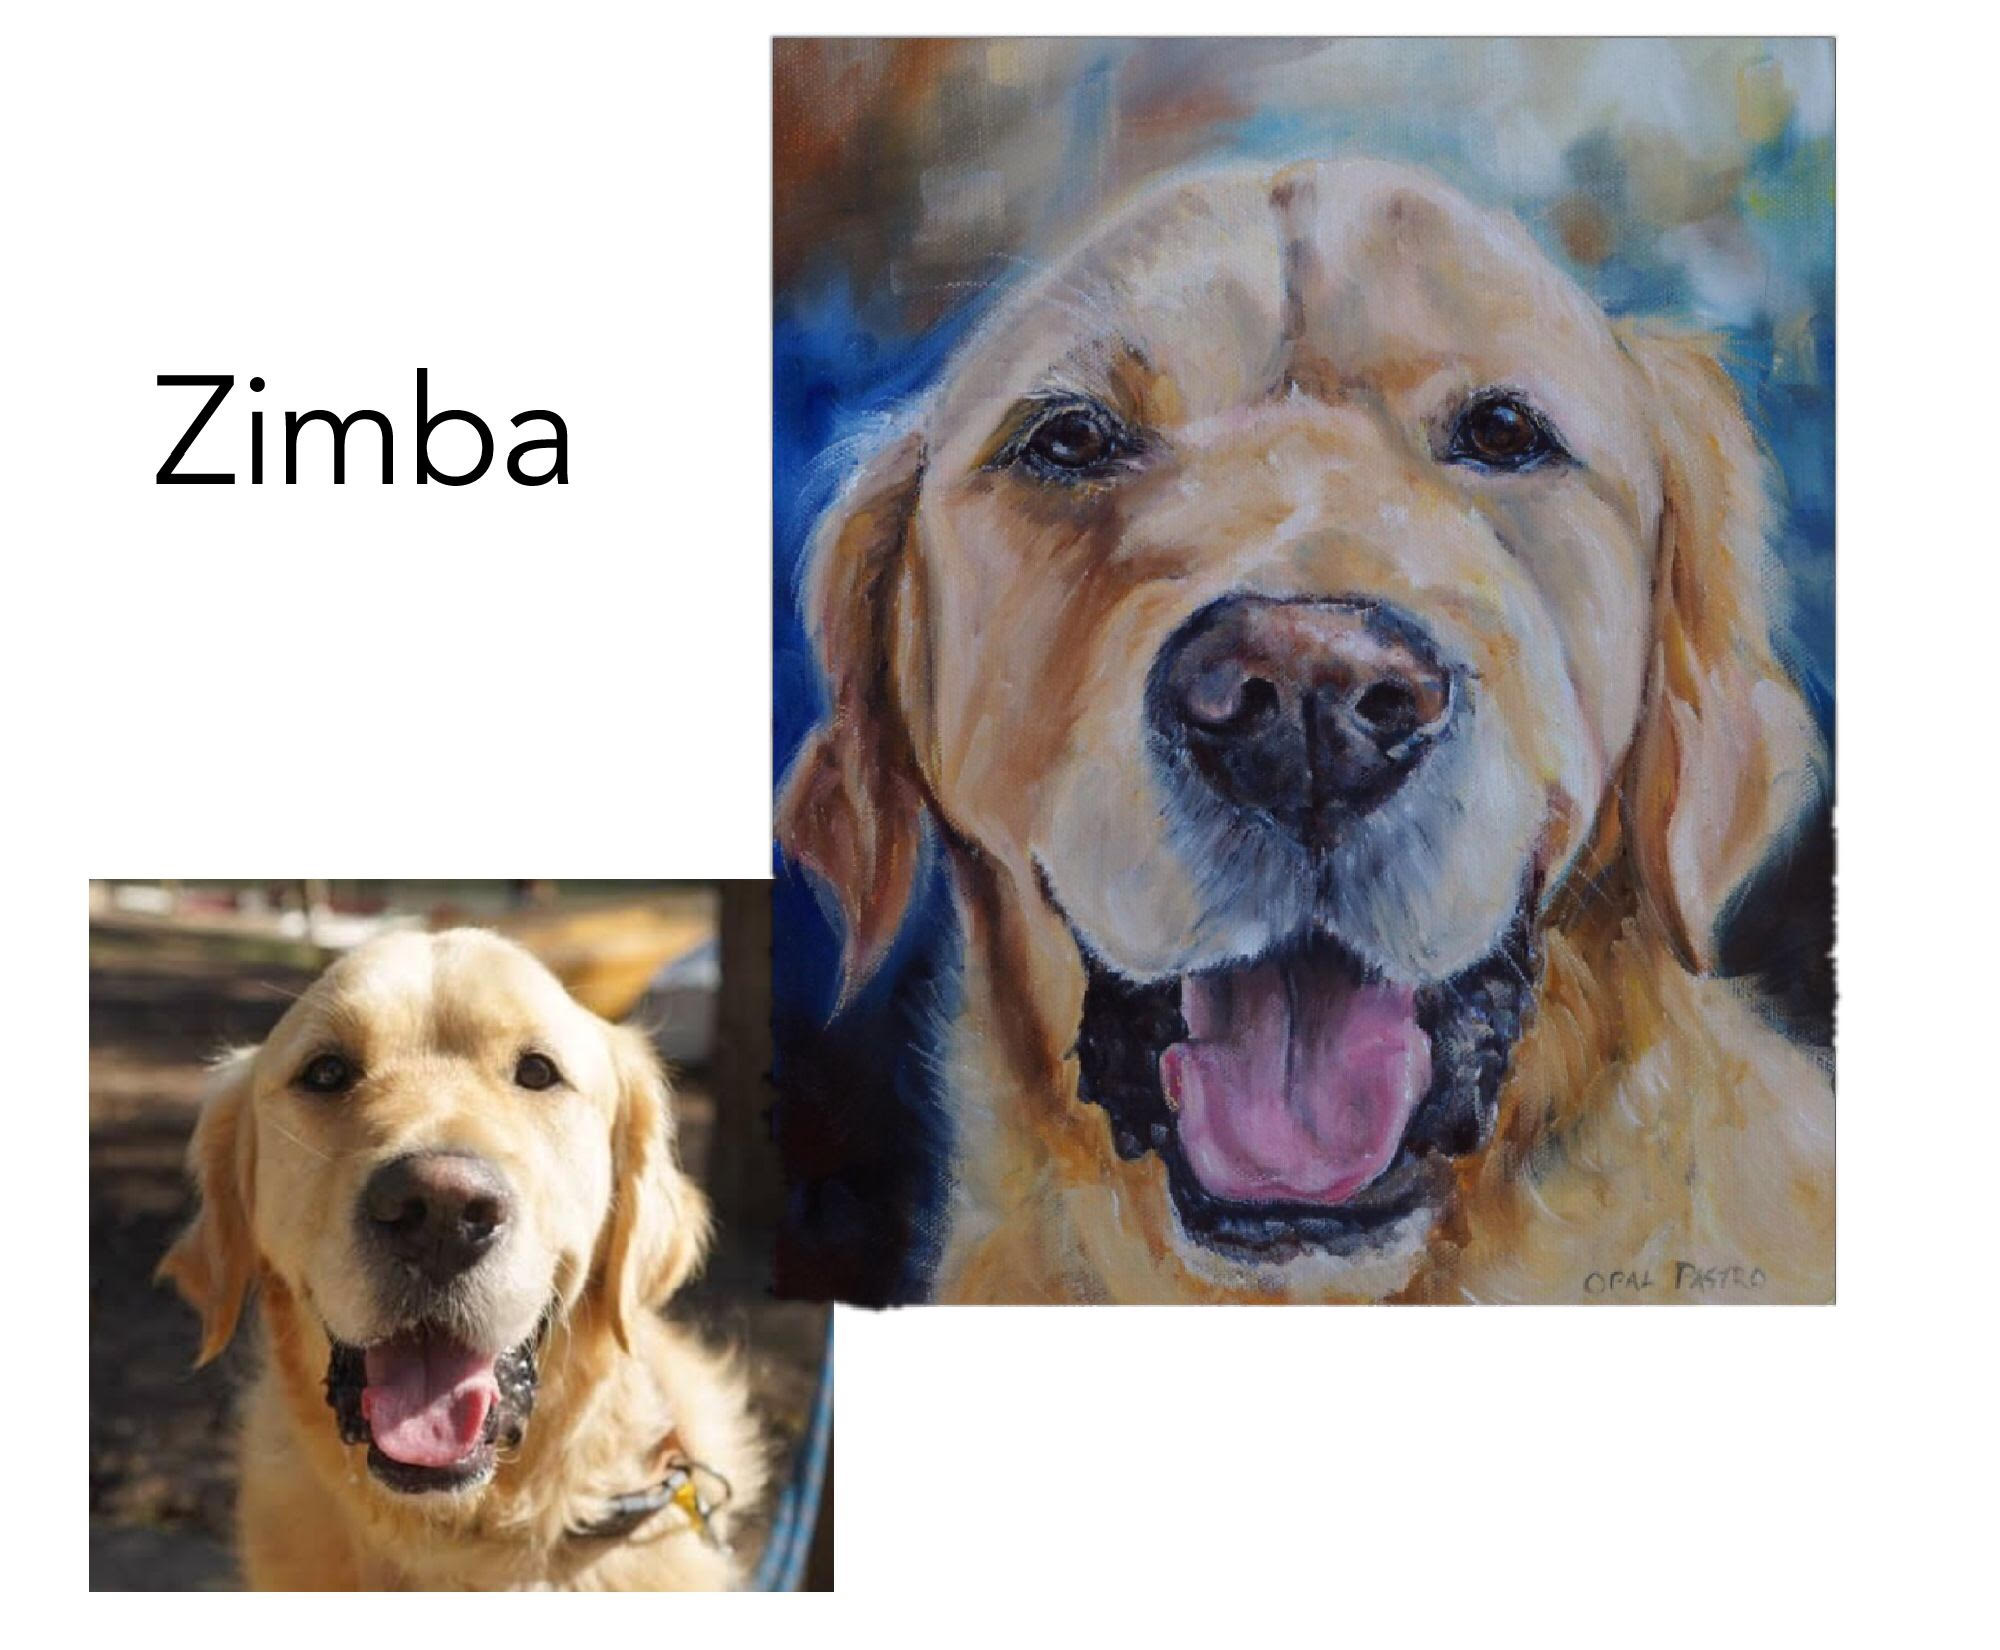 """Golden Retriever - Acrylic and oil on canvas 10"""" x 12"""" (25.4cm x 30.48cm)Private commissionMelbourne, Vic—————————————-Zimba was commissioned as a Christmas gift for his Mum. He is a gentle lovable giant who loves to give hugs. He was named after his mum's homeland in Zimbabwe"""